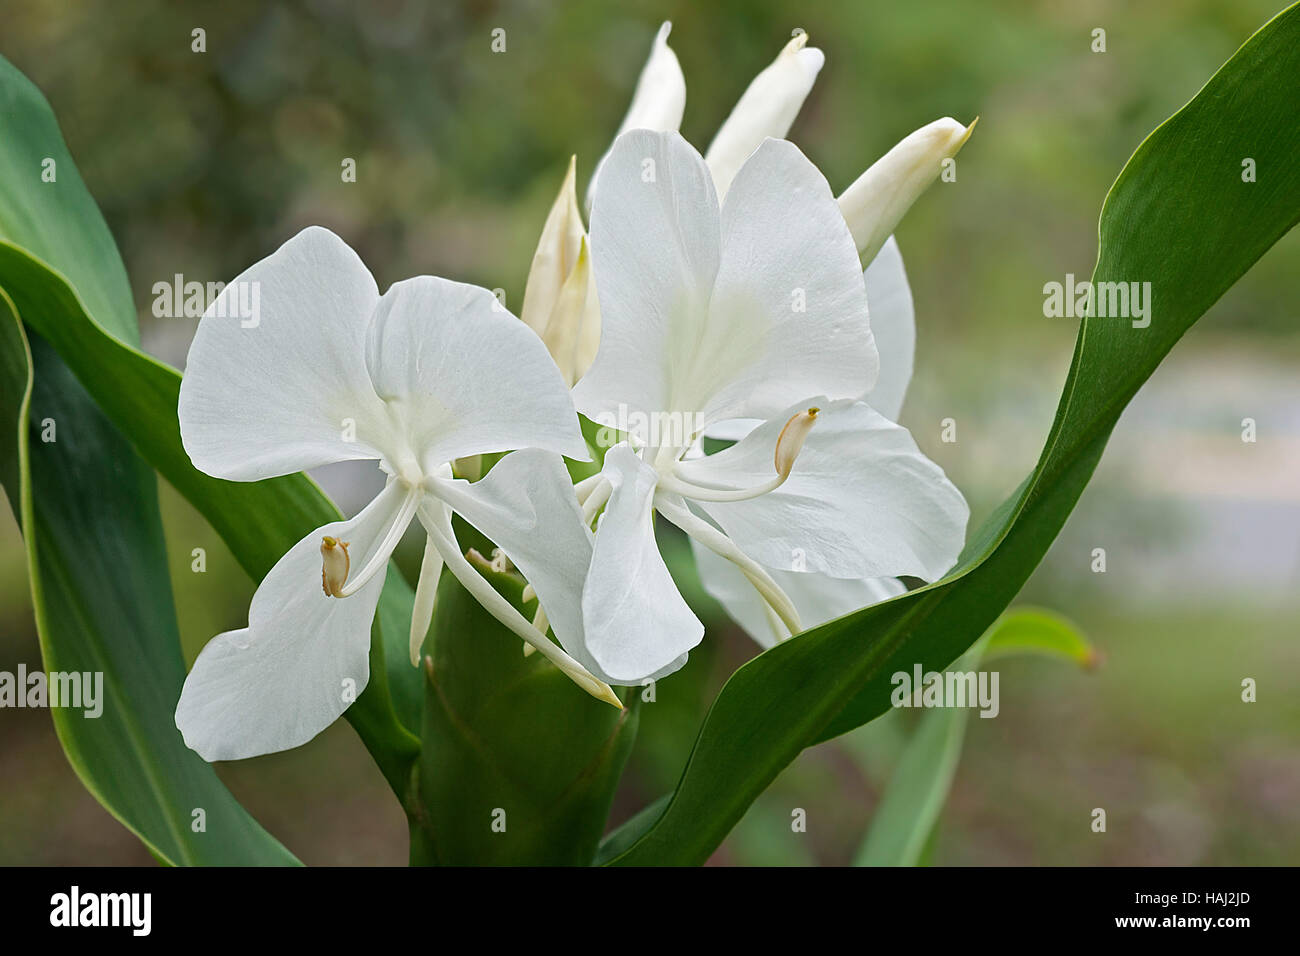 White ginger lily flowers stock photo 127016357 alamy white ginger lily flowers mightylinksfo